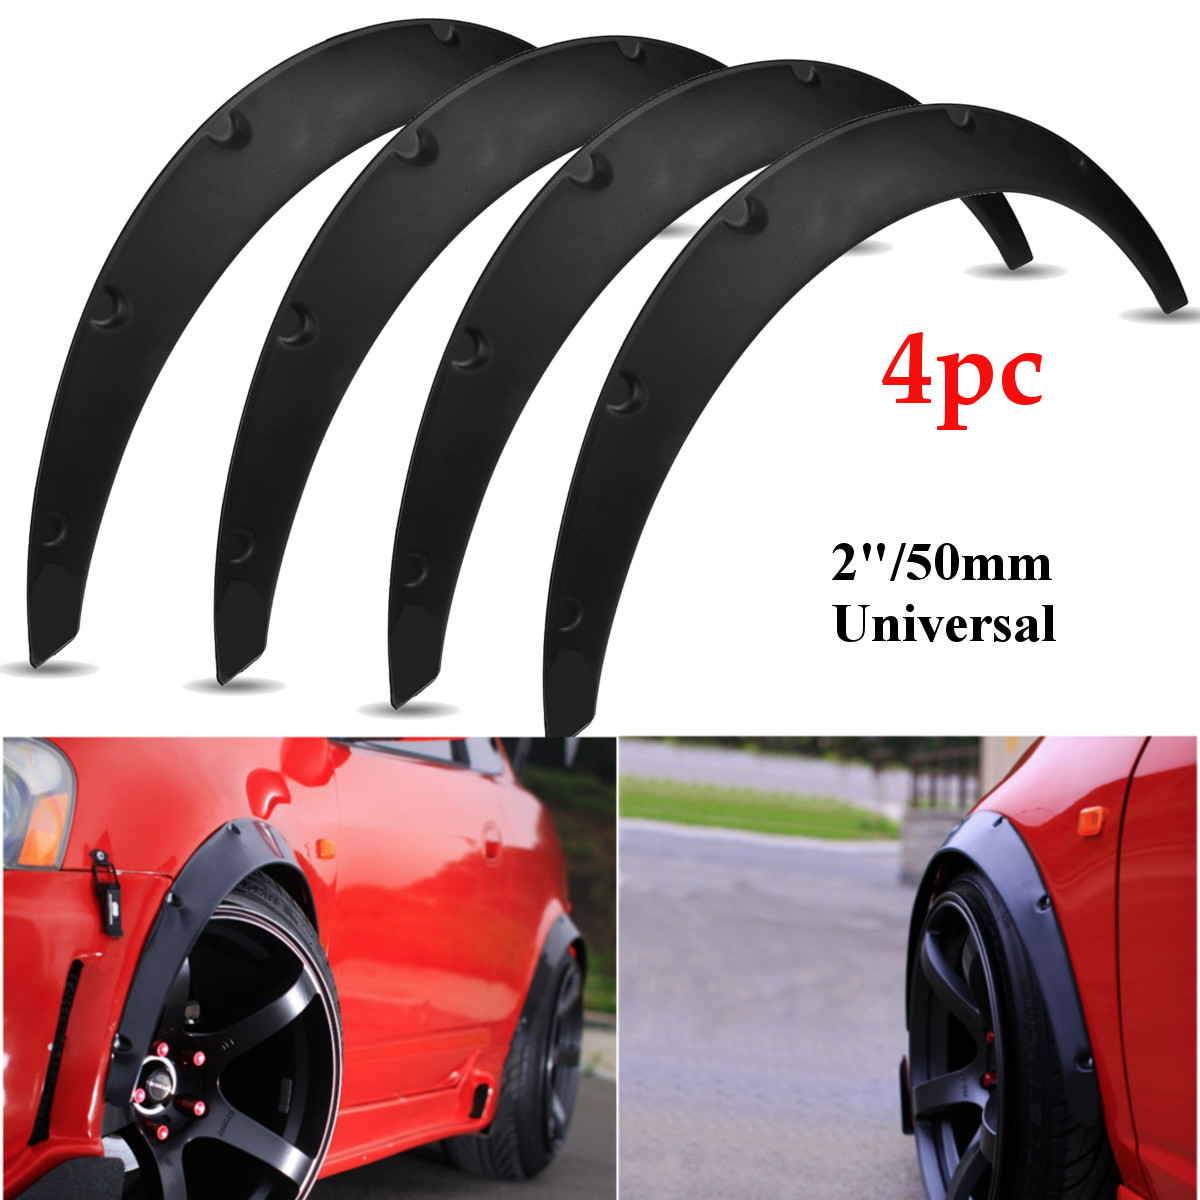 4Pcs 2inch Universal Flexible Car Mudguards Mud Splash Guards Mud Flaps Fender Flares Extra Wide Body Wheel Arches